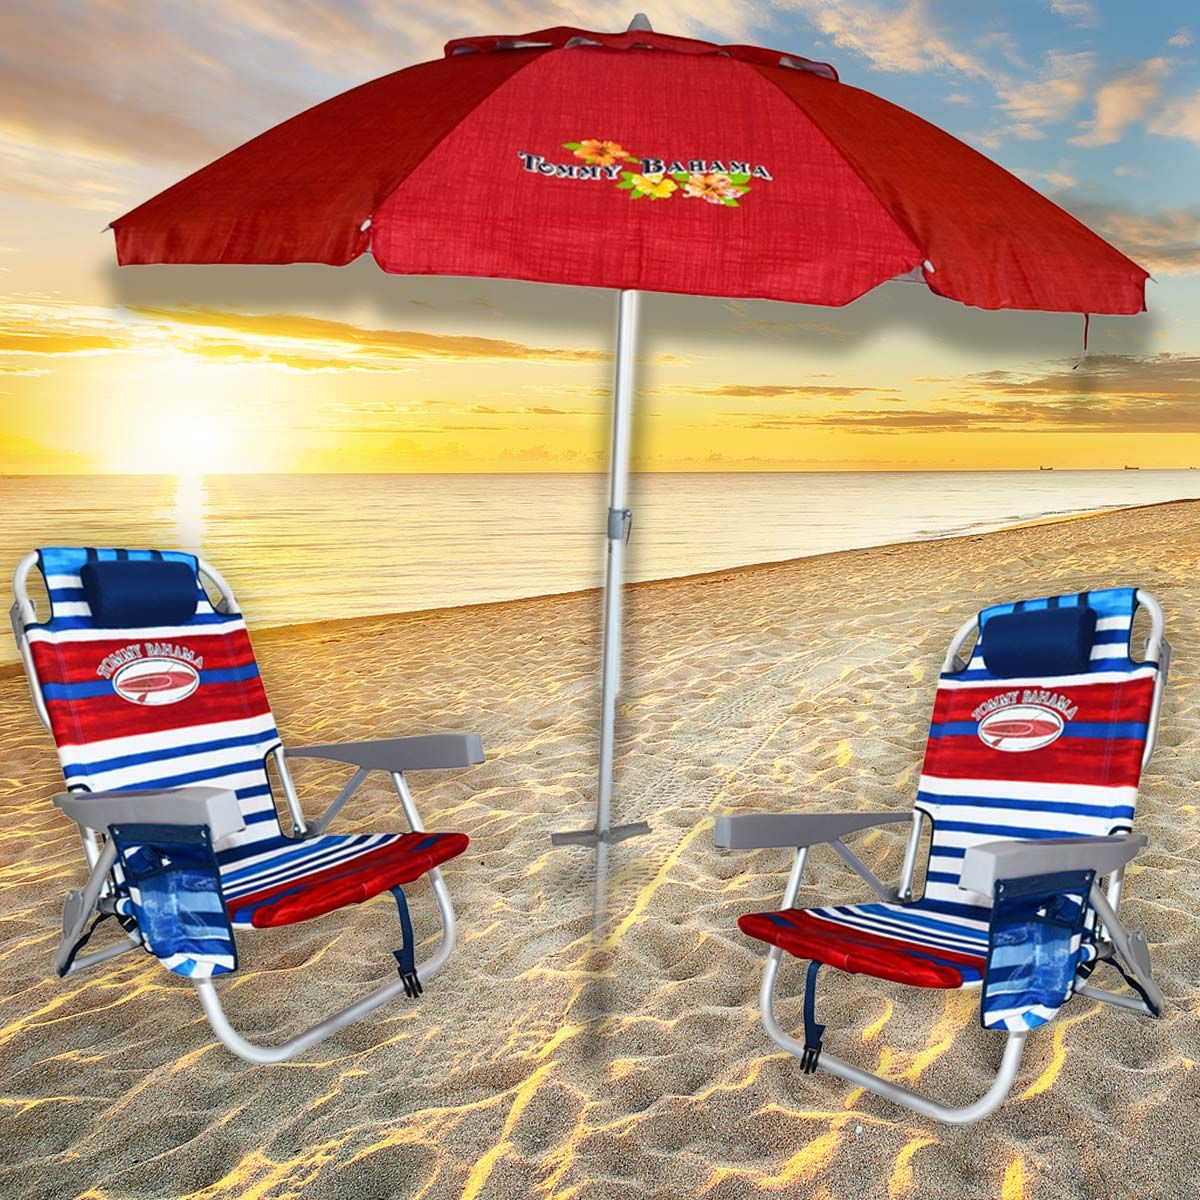 Enter to win Tommy Bahama beach chairs and umbrella ($170